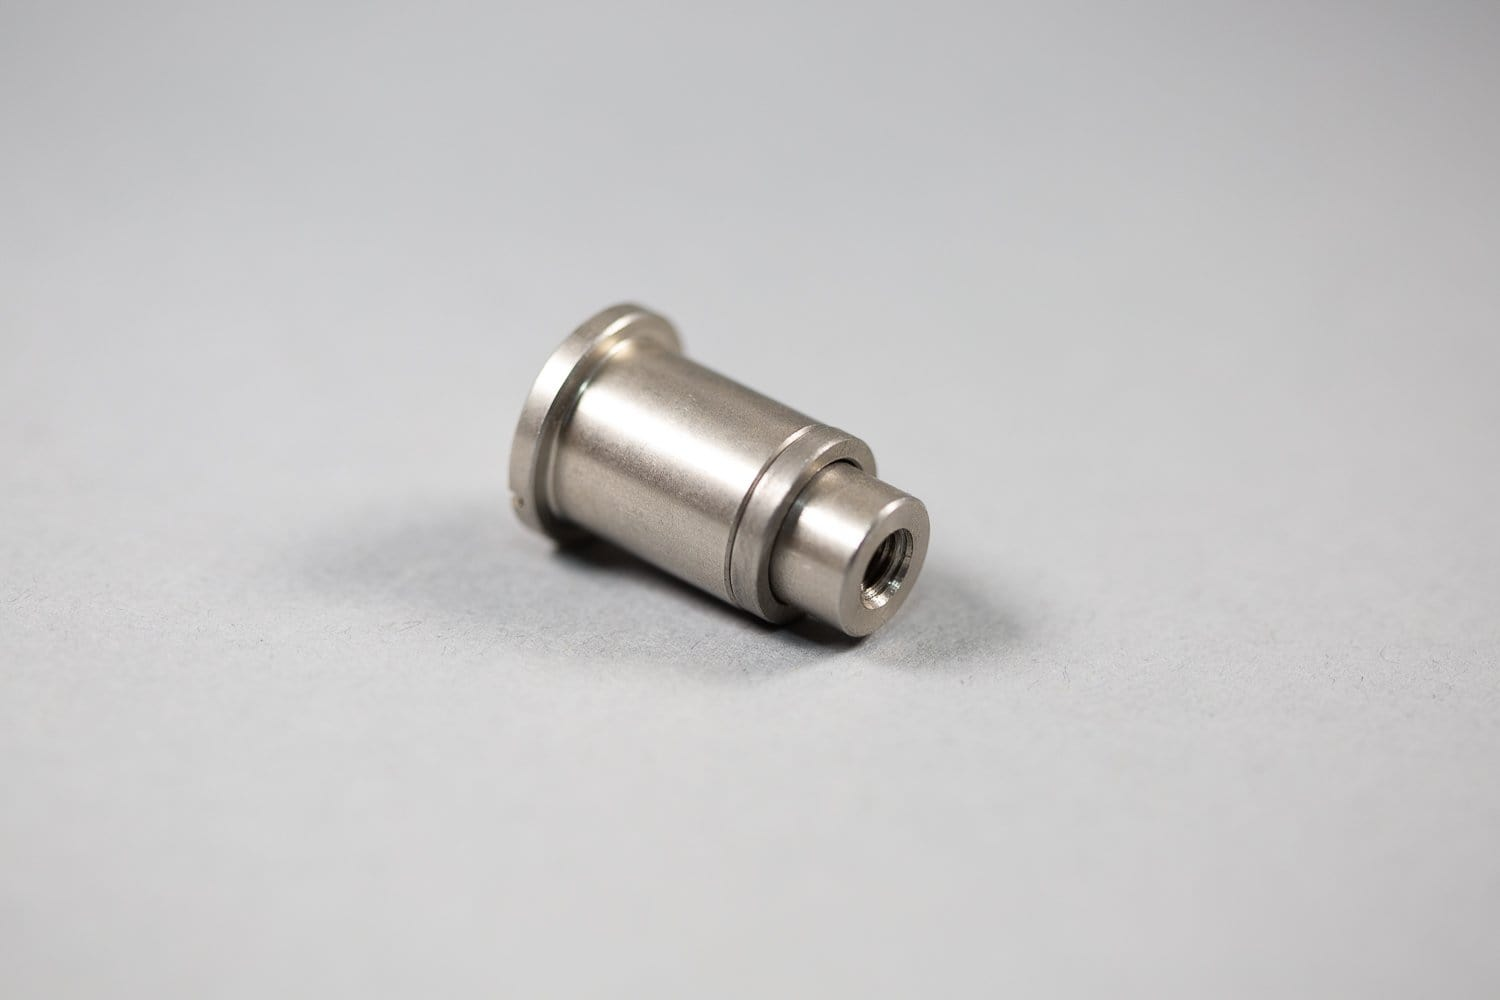 05-0300P Brake Pin w/BH bolt (04-BH616) and collar, Hon F2/F3 - Woodcraft Technologies - Motorcycle Parts